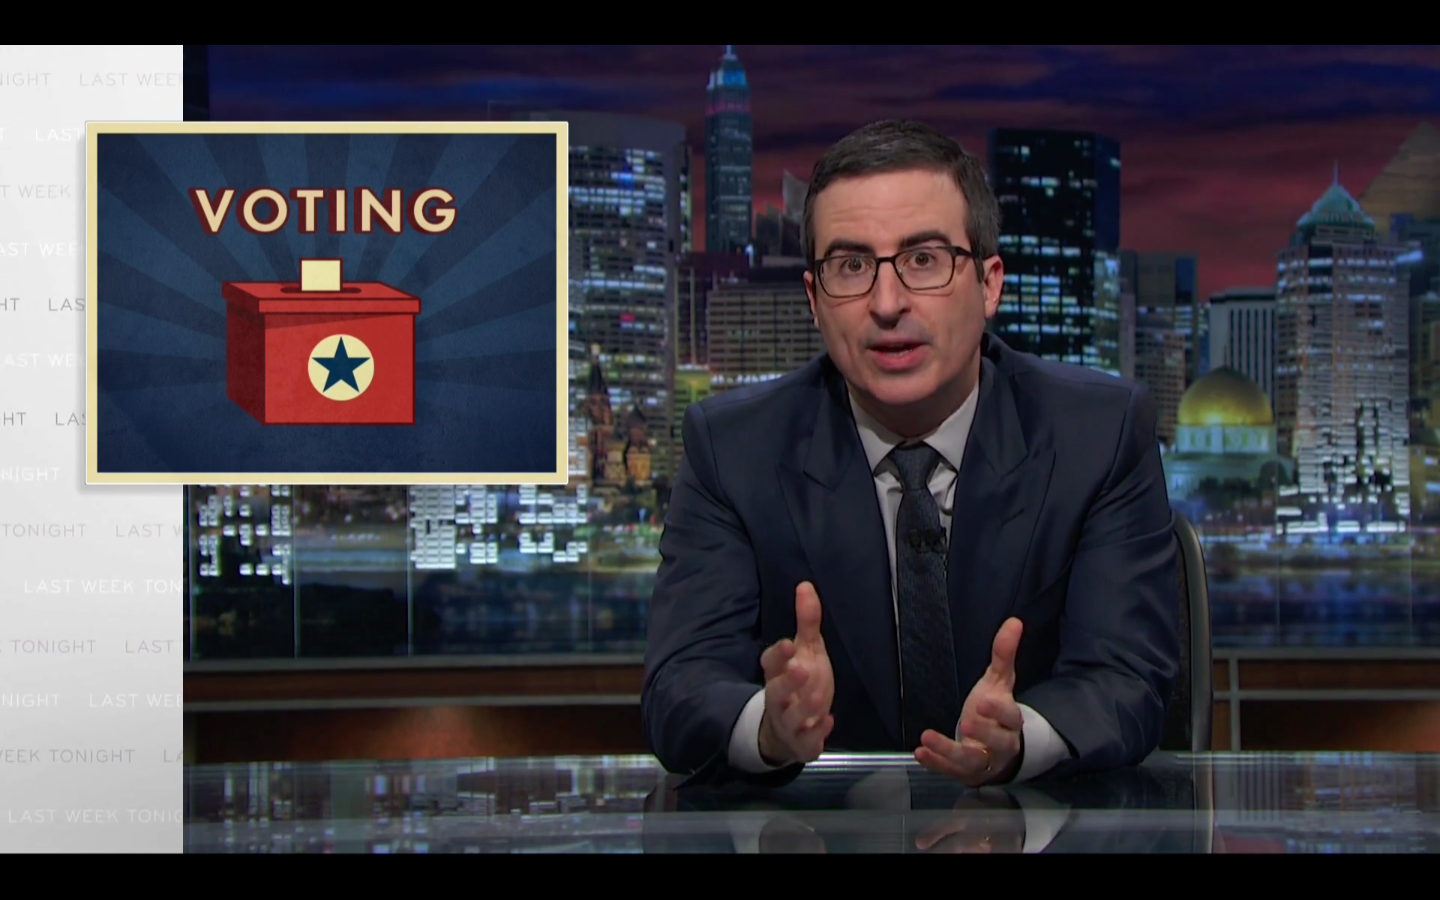 John Oliver on voting in the United States